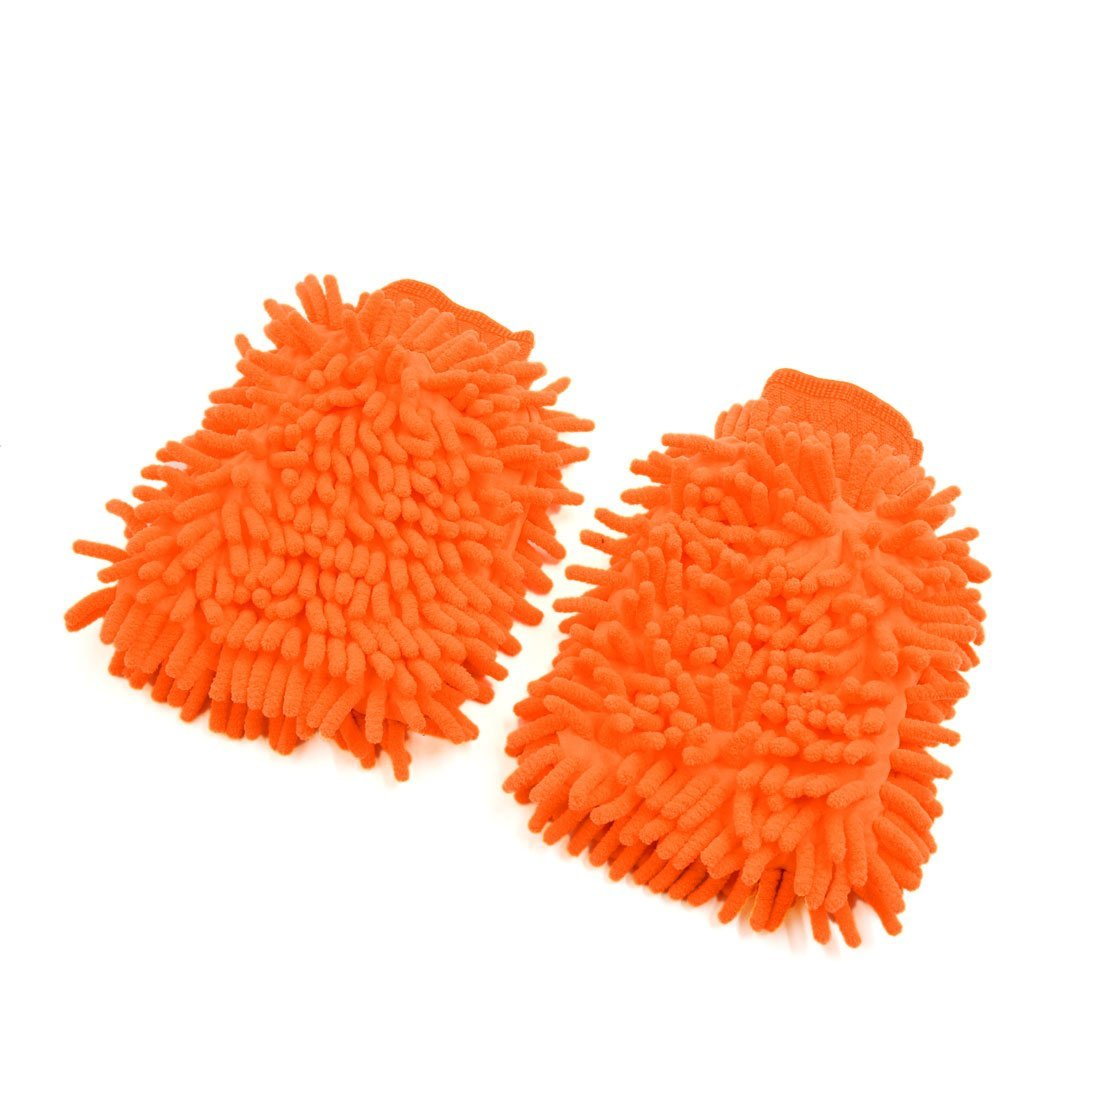 uxcell 2pcs Universal Orange Chenille Washing Cleaning Gloves Mittens for Car Vehicle